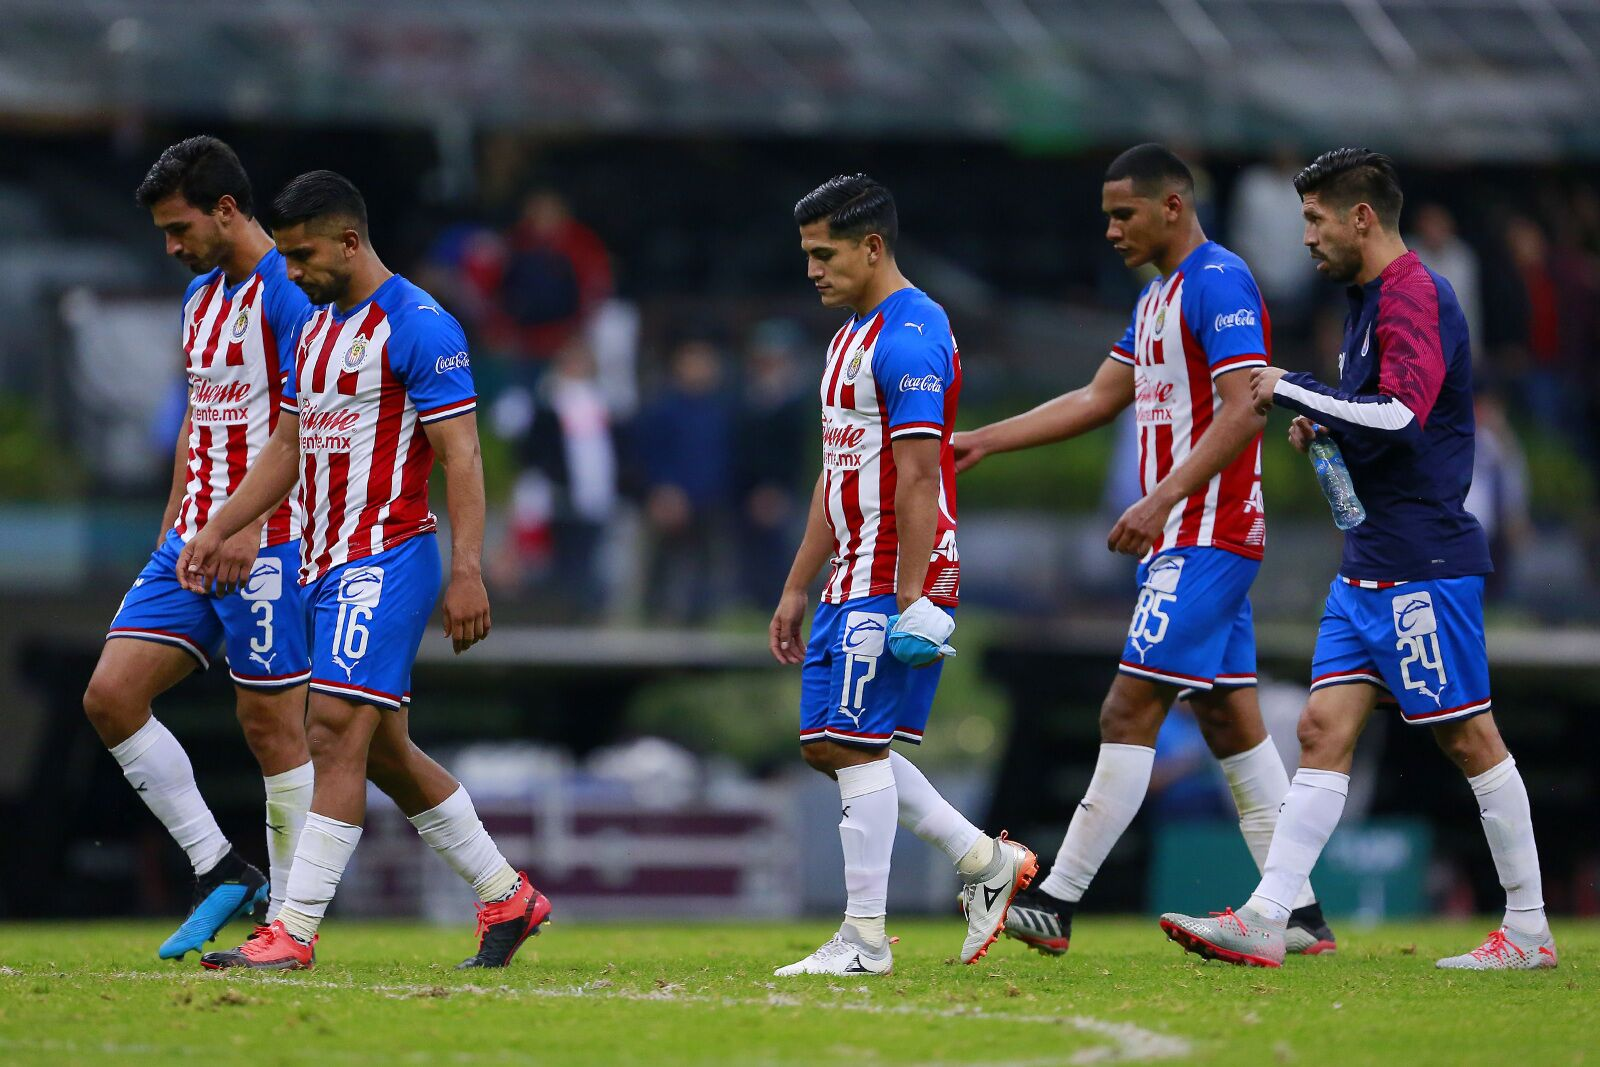 Chivas front office maneuvers continue during lost season